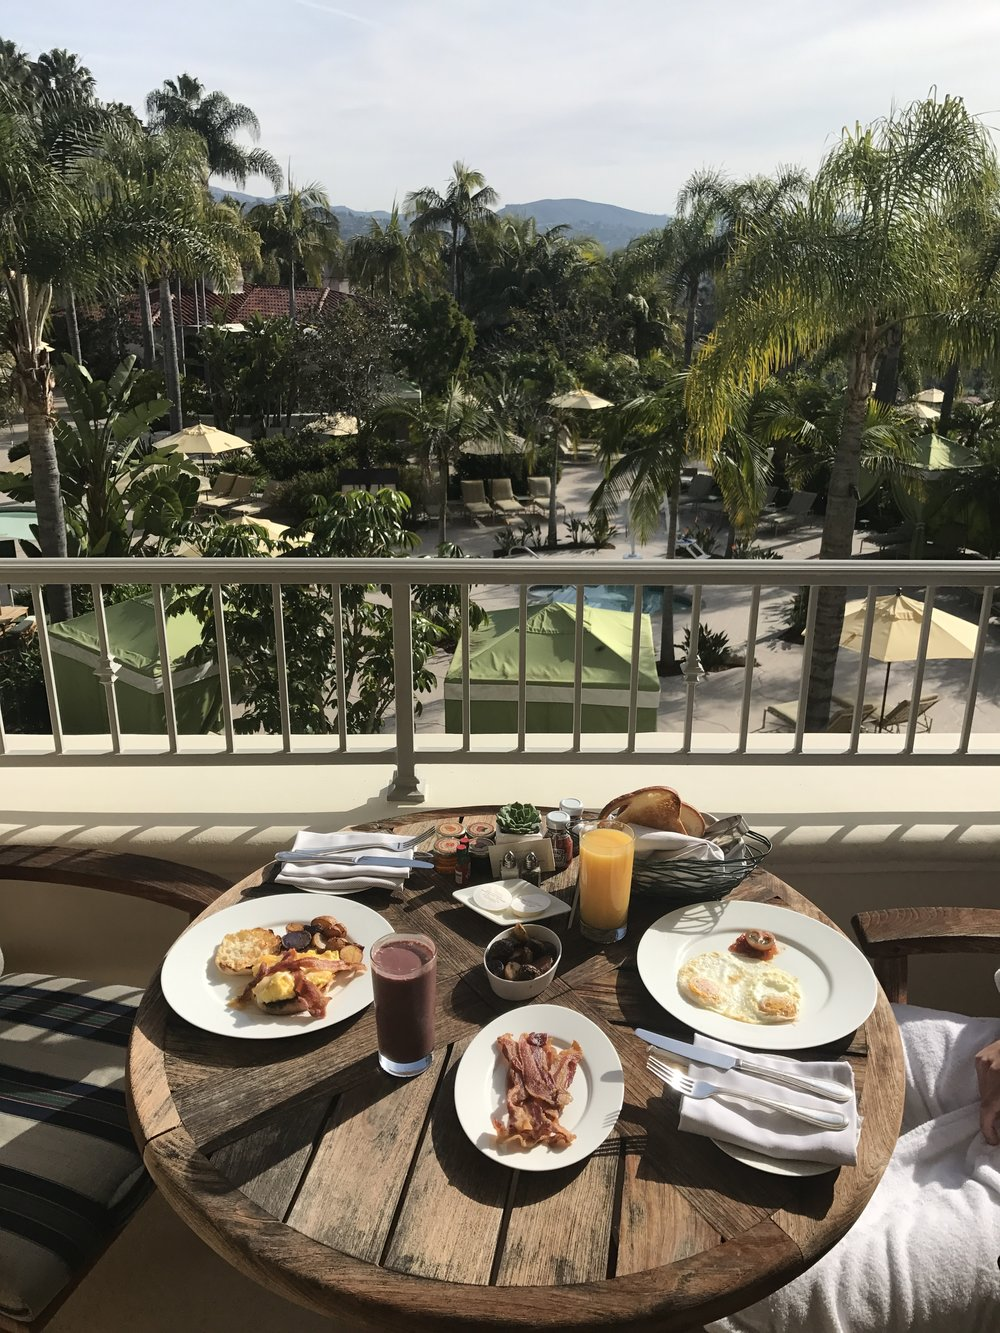 Brunch is better on a balcony.